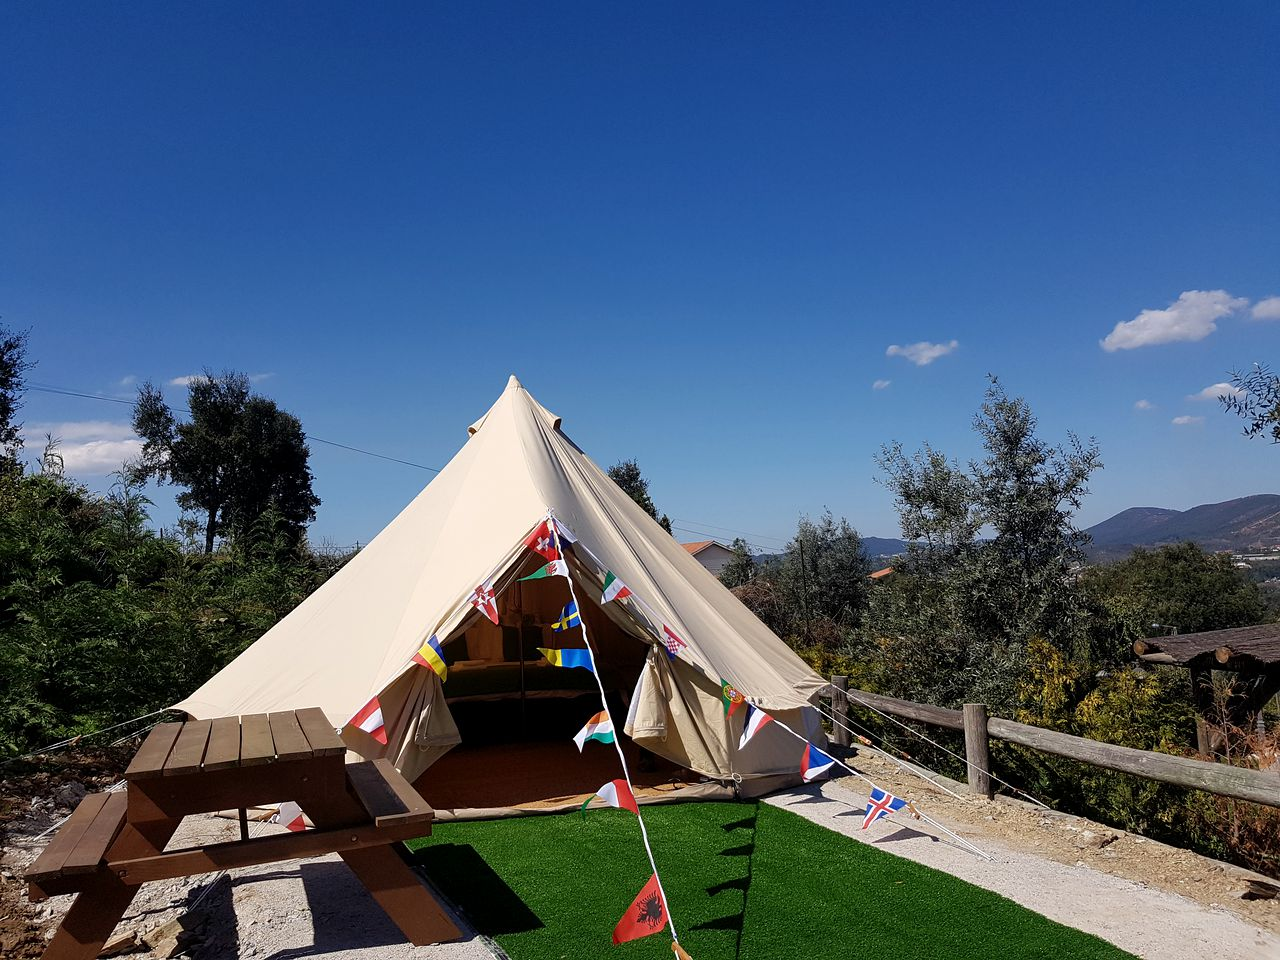 Bell Tents (Raiva, Aveiro District, Portugal)